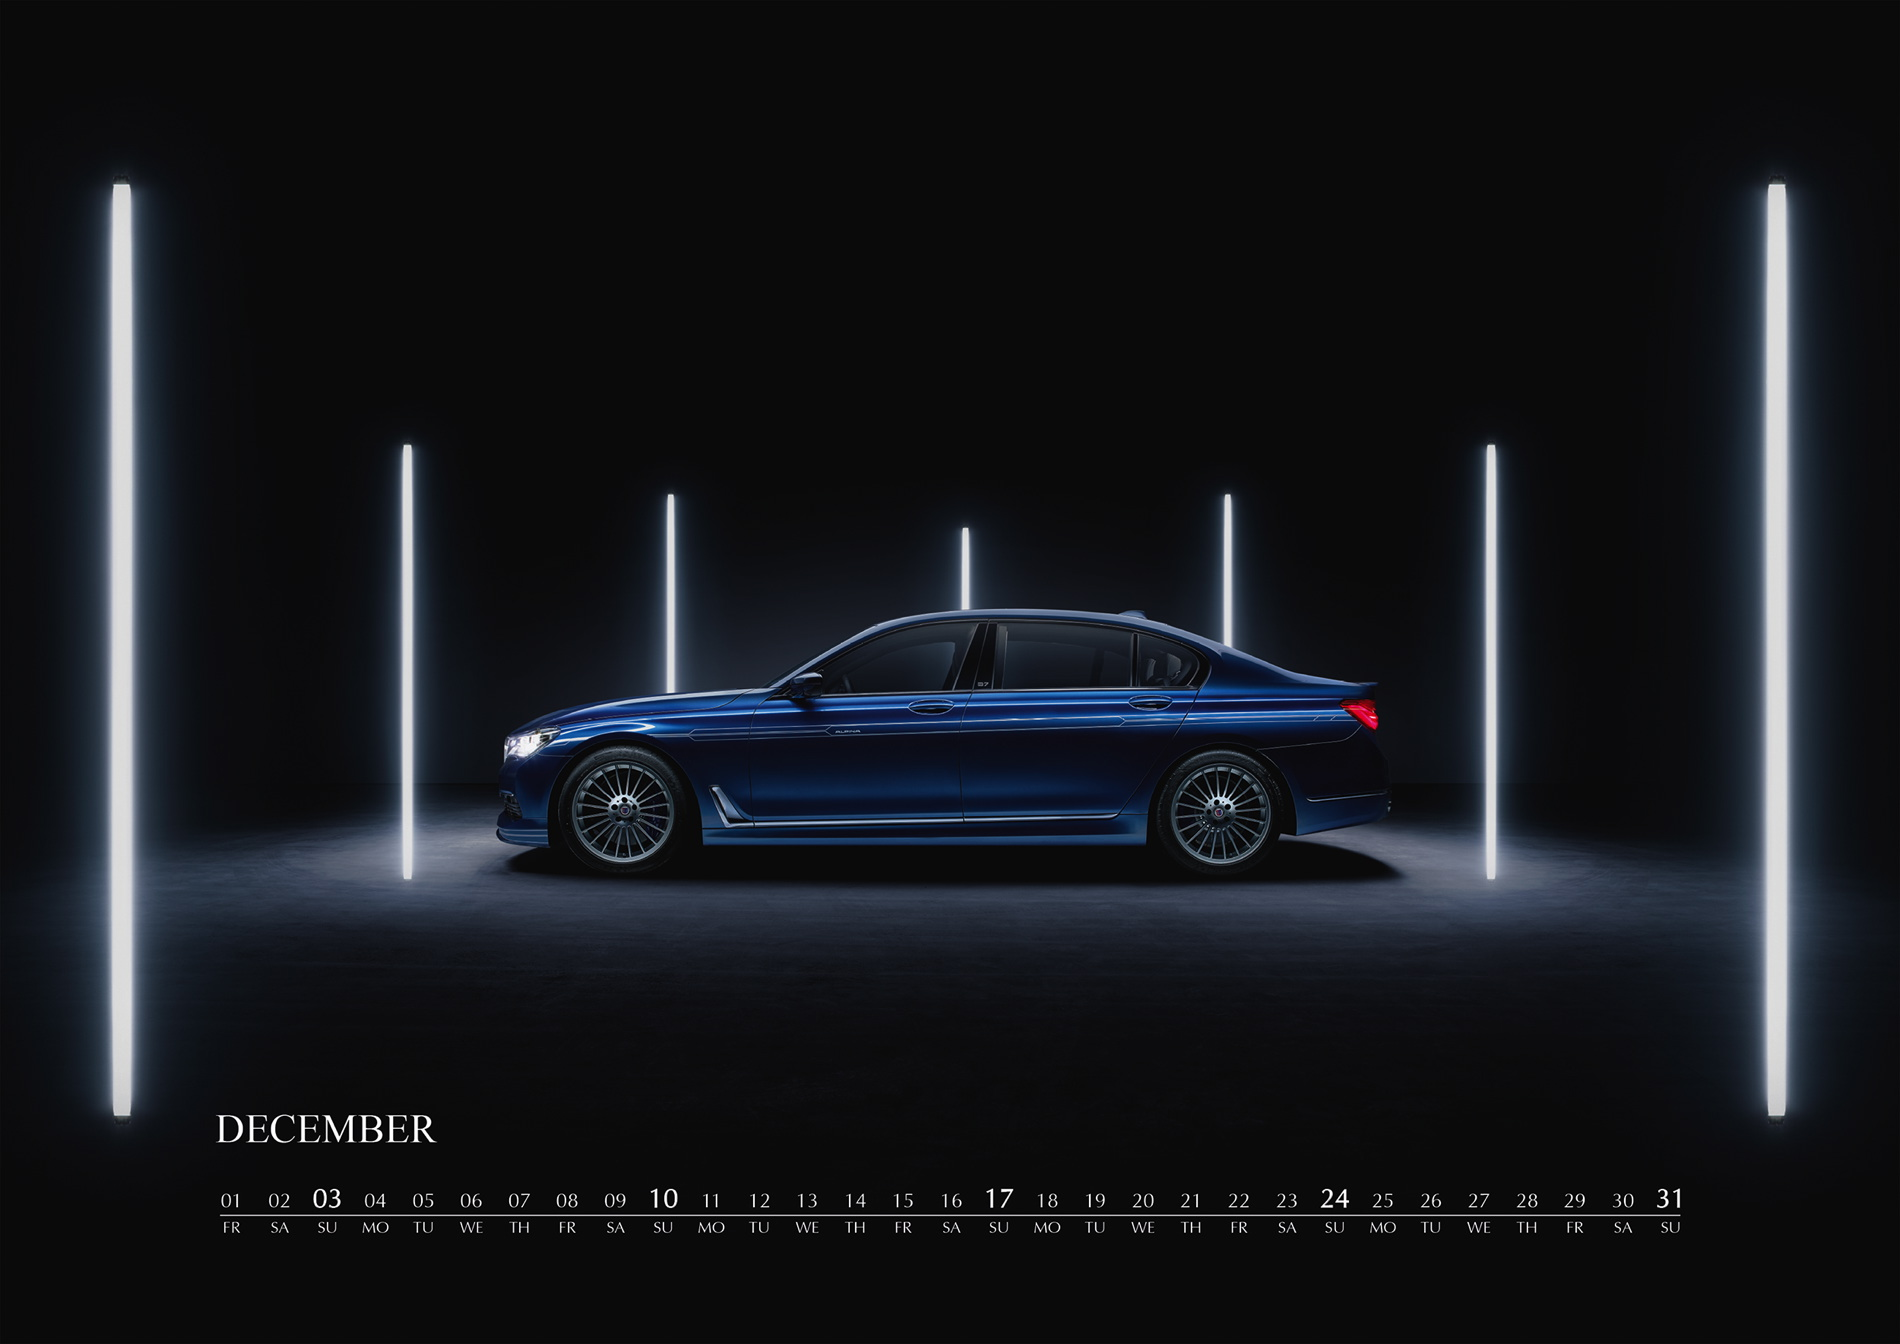 ALPINA wall calendar dedicated to the 7 Series is now available